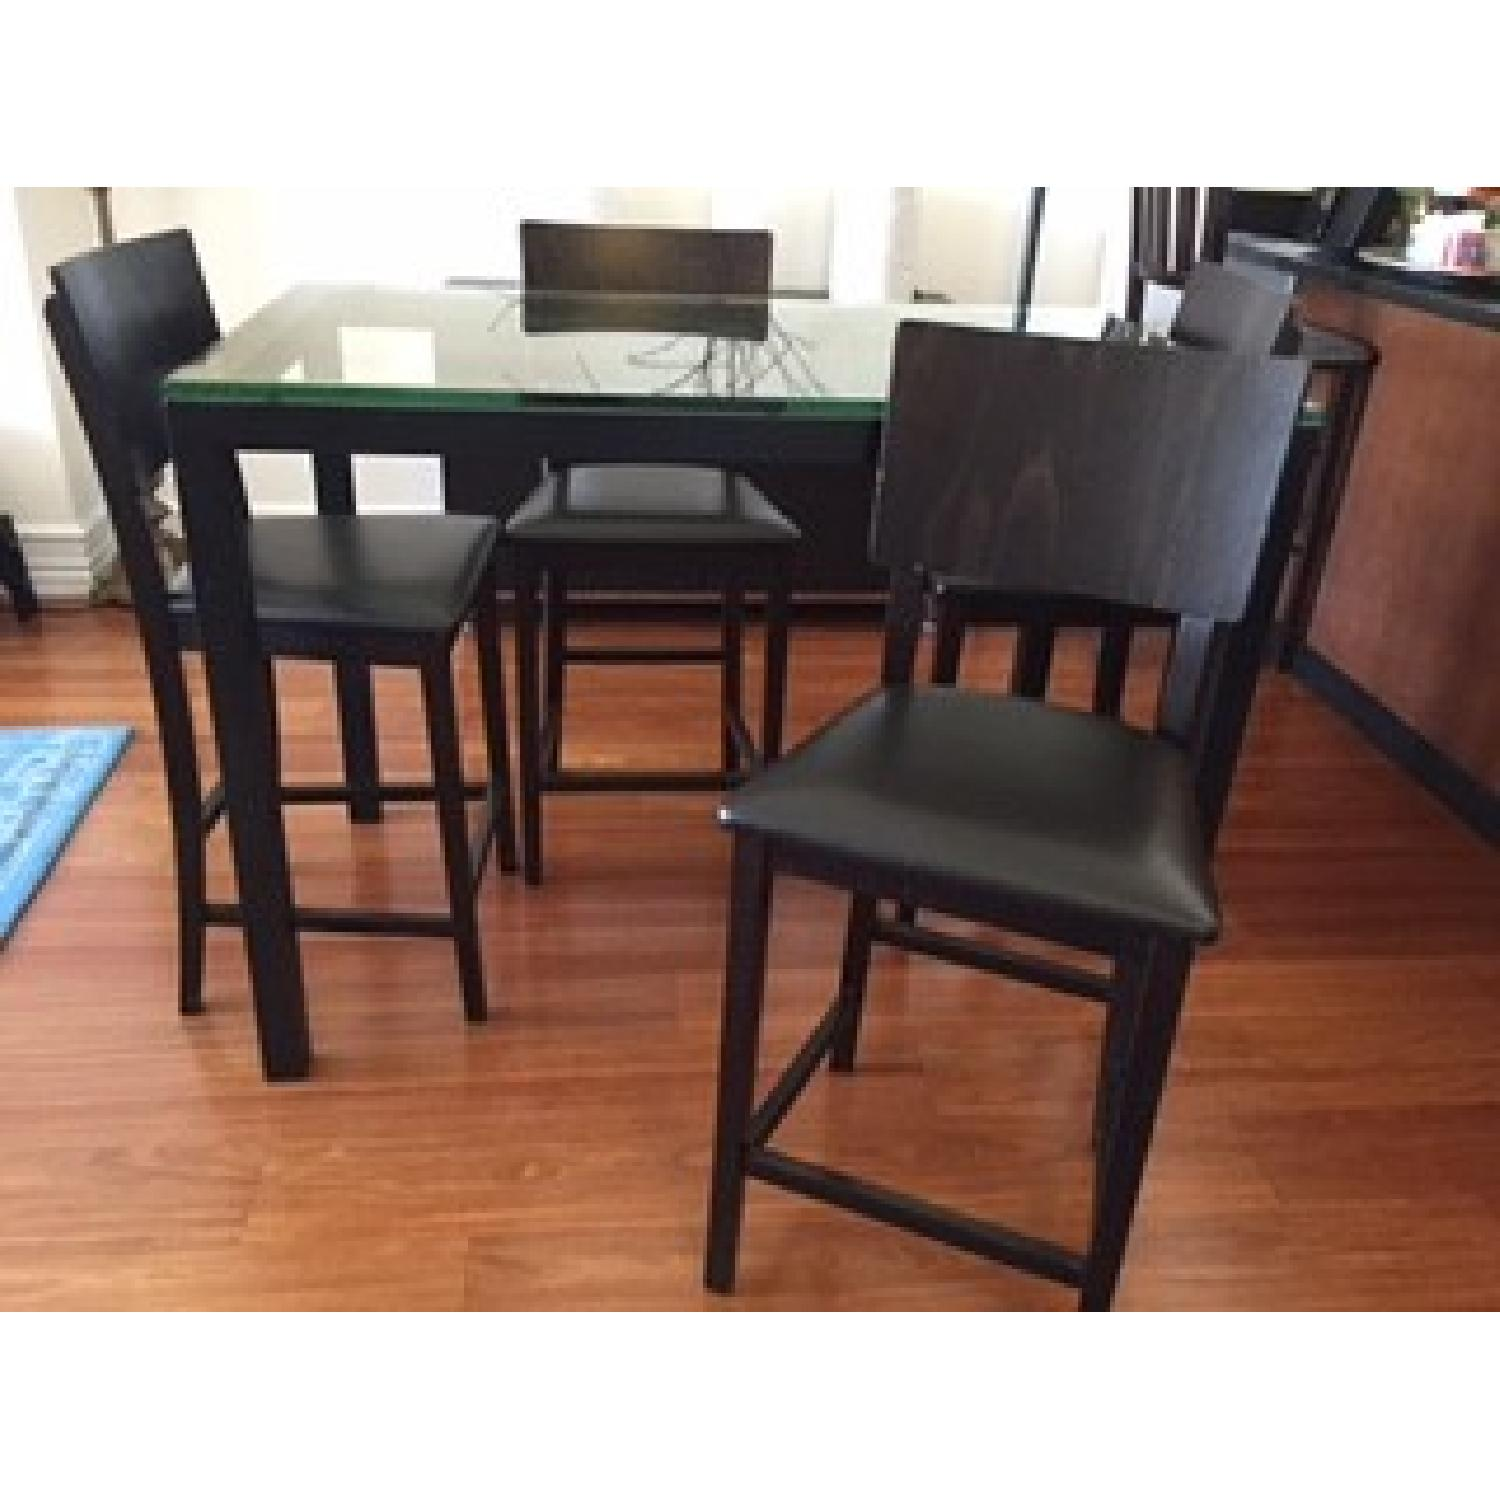 Crate & Barrel Clear Glass Top/ Natural Dark Steel Base Parsons High Dining Table w/ 4 Bar Stools - image-1